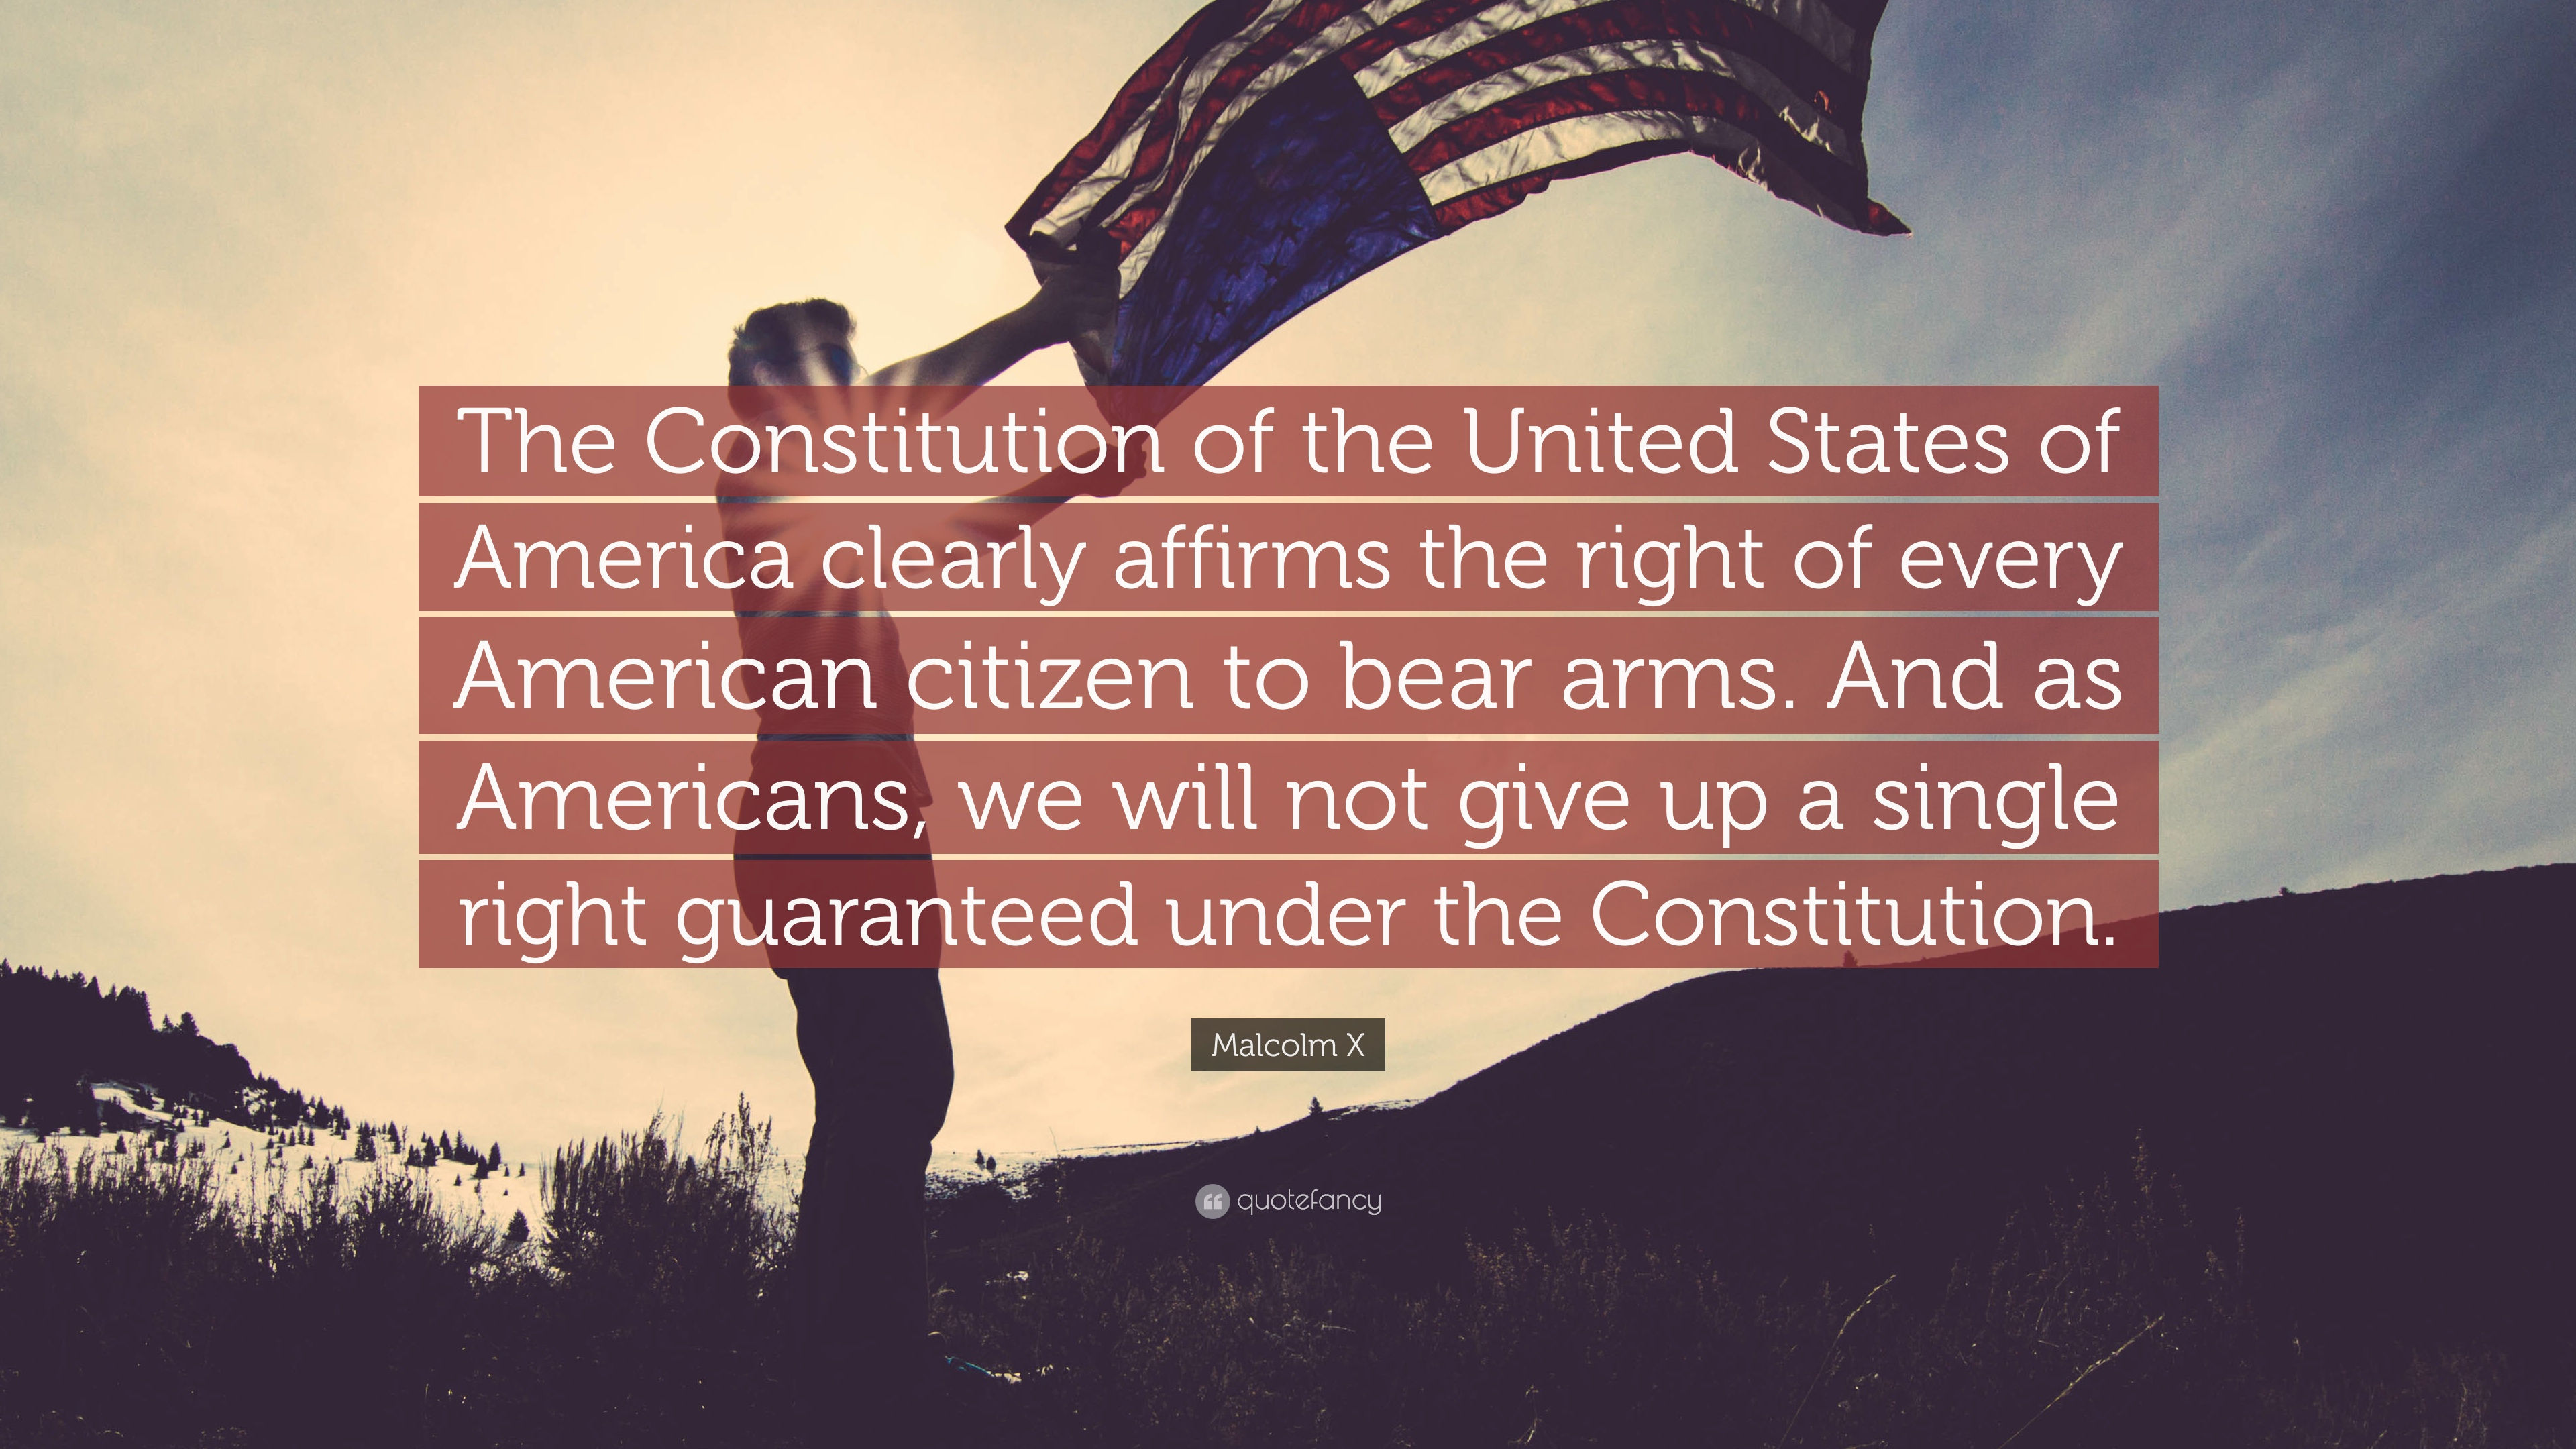 an overview of the right to bear arms in the united states of america